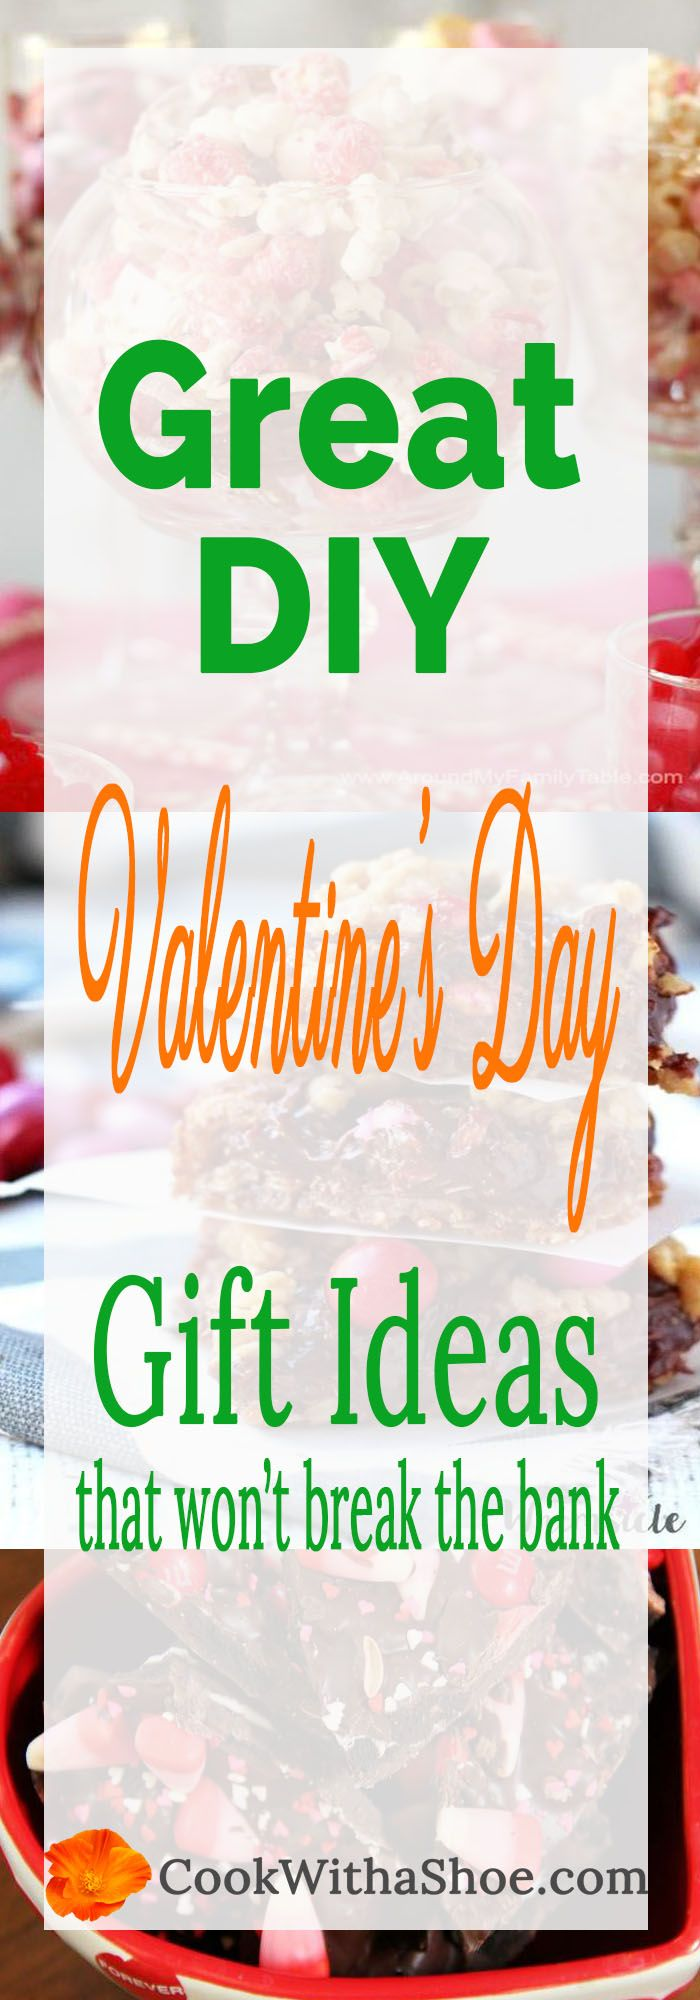 These gifts are so easy and cheap to make!  Check out these ahhh-mazing Valentine gift ideas today!